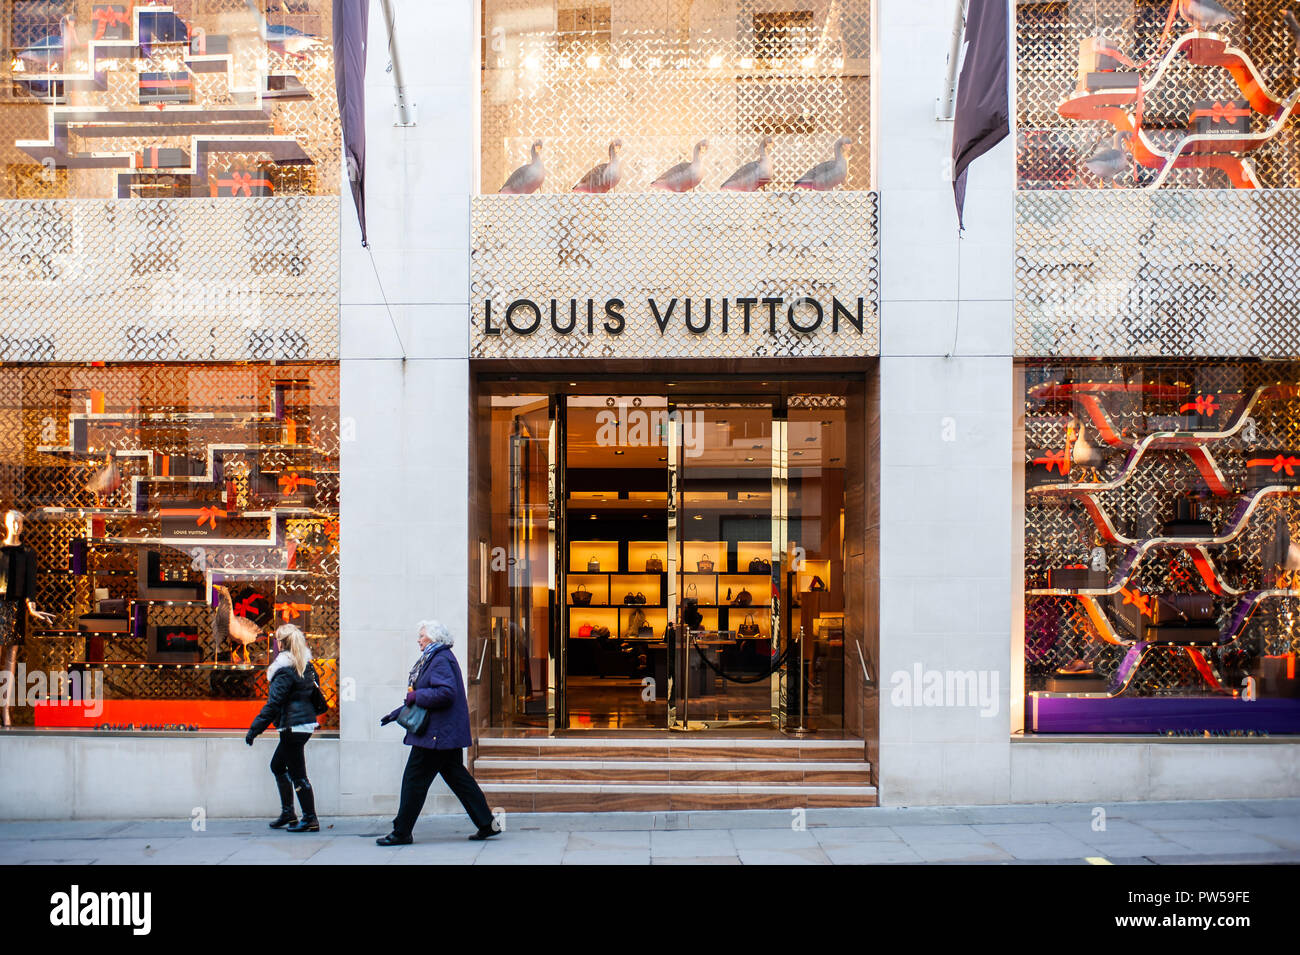 LONDON, UK - NOV 21: People walk in front of the Christmas decorated windows  of the Louis Vuitton boutique in Mayfair, London, UK on November 21, 201 - Stock Image